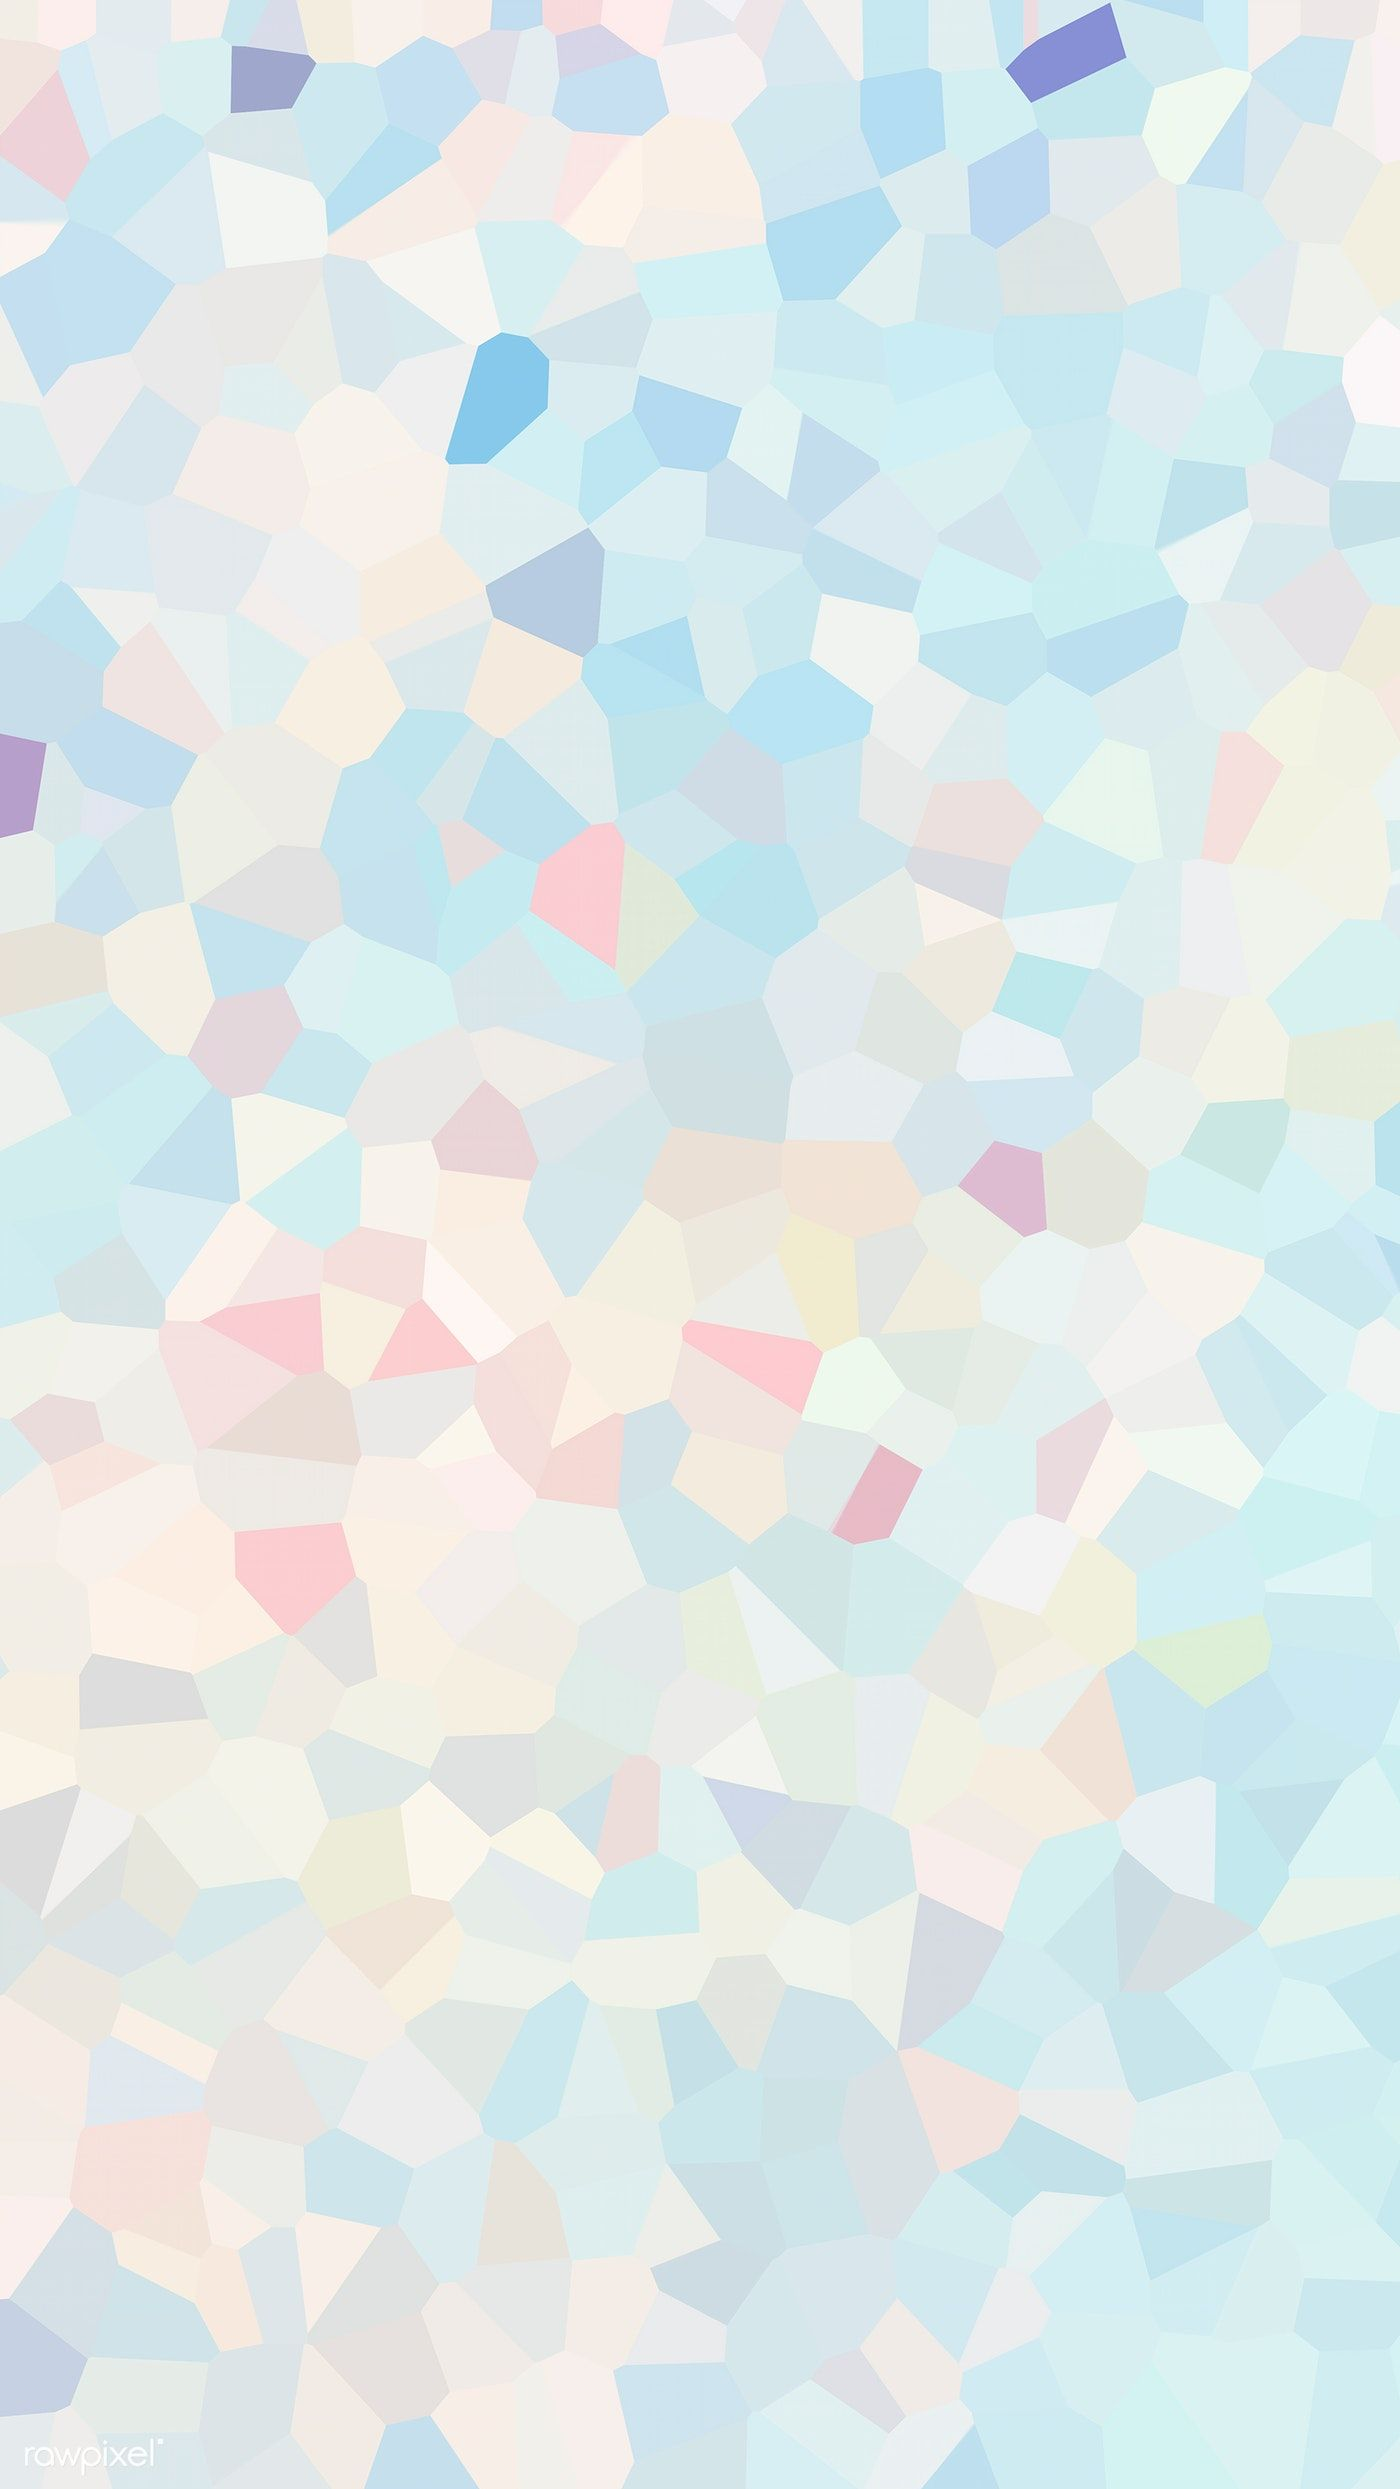 Download premium illustration of Blue polygon abstract mobile phone